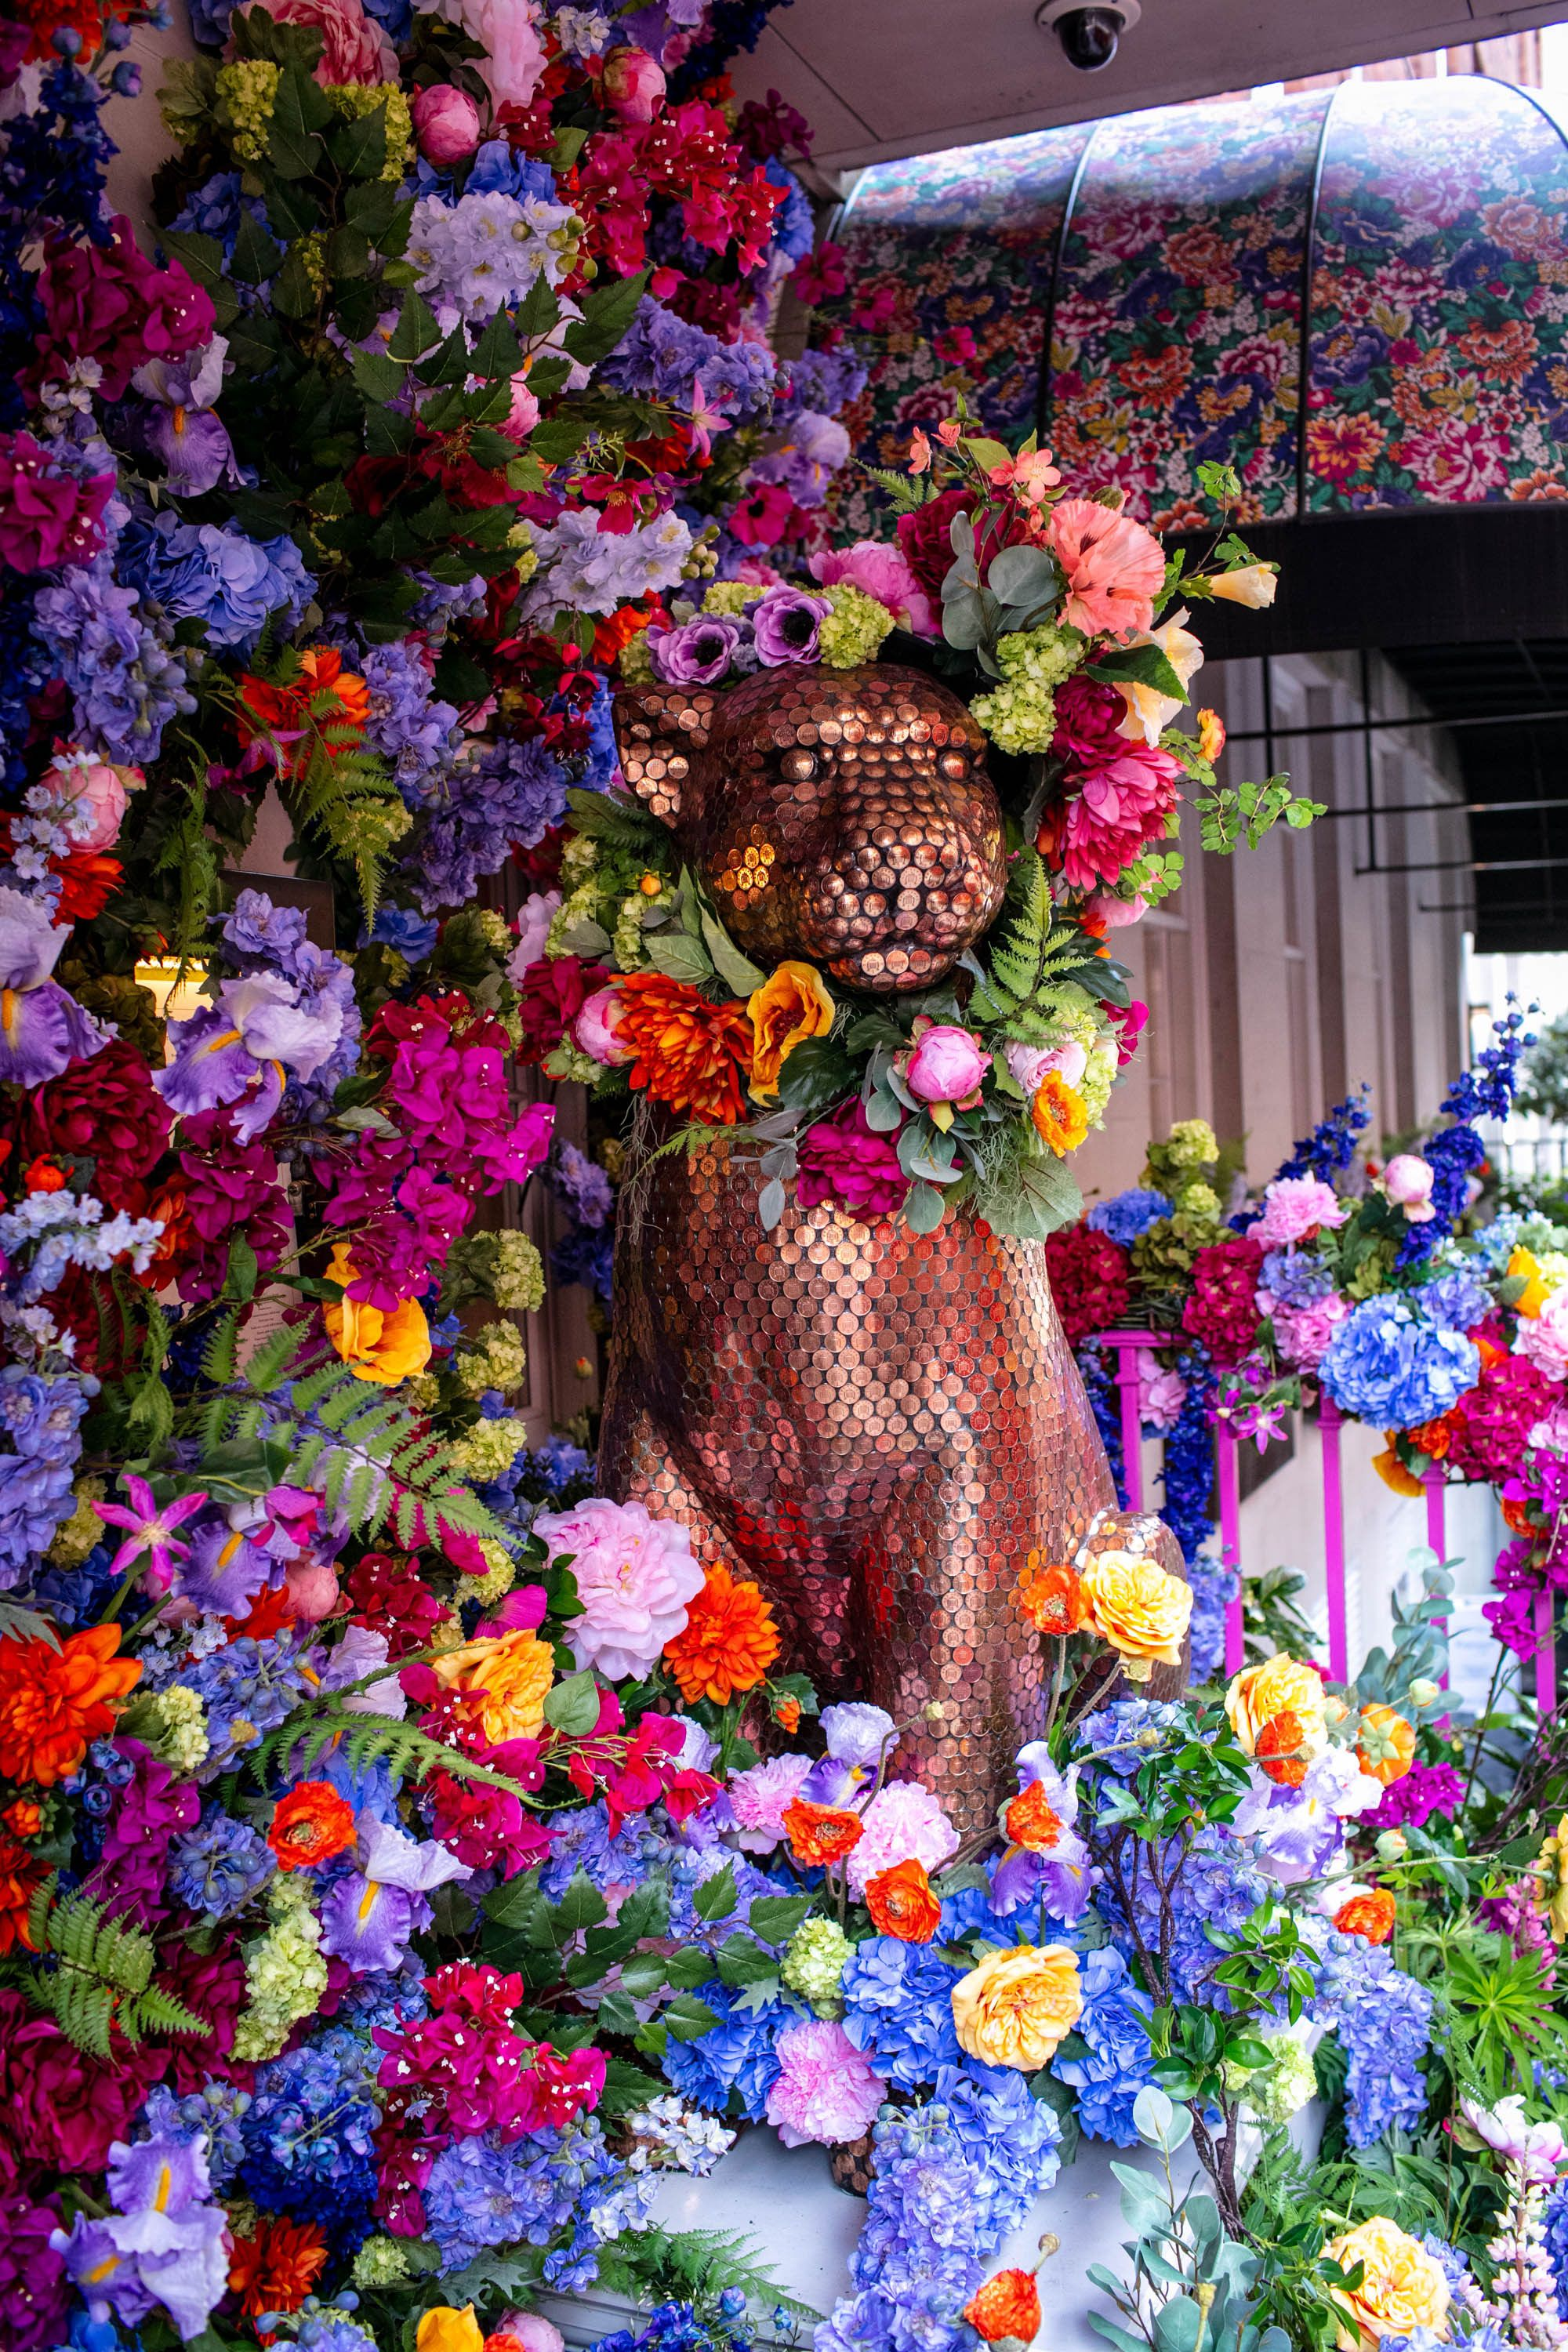 21 beautiful pictures of the Chelsea Flower Show 2019